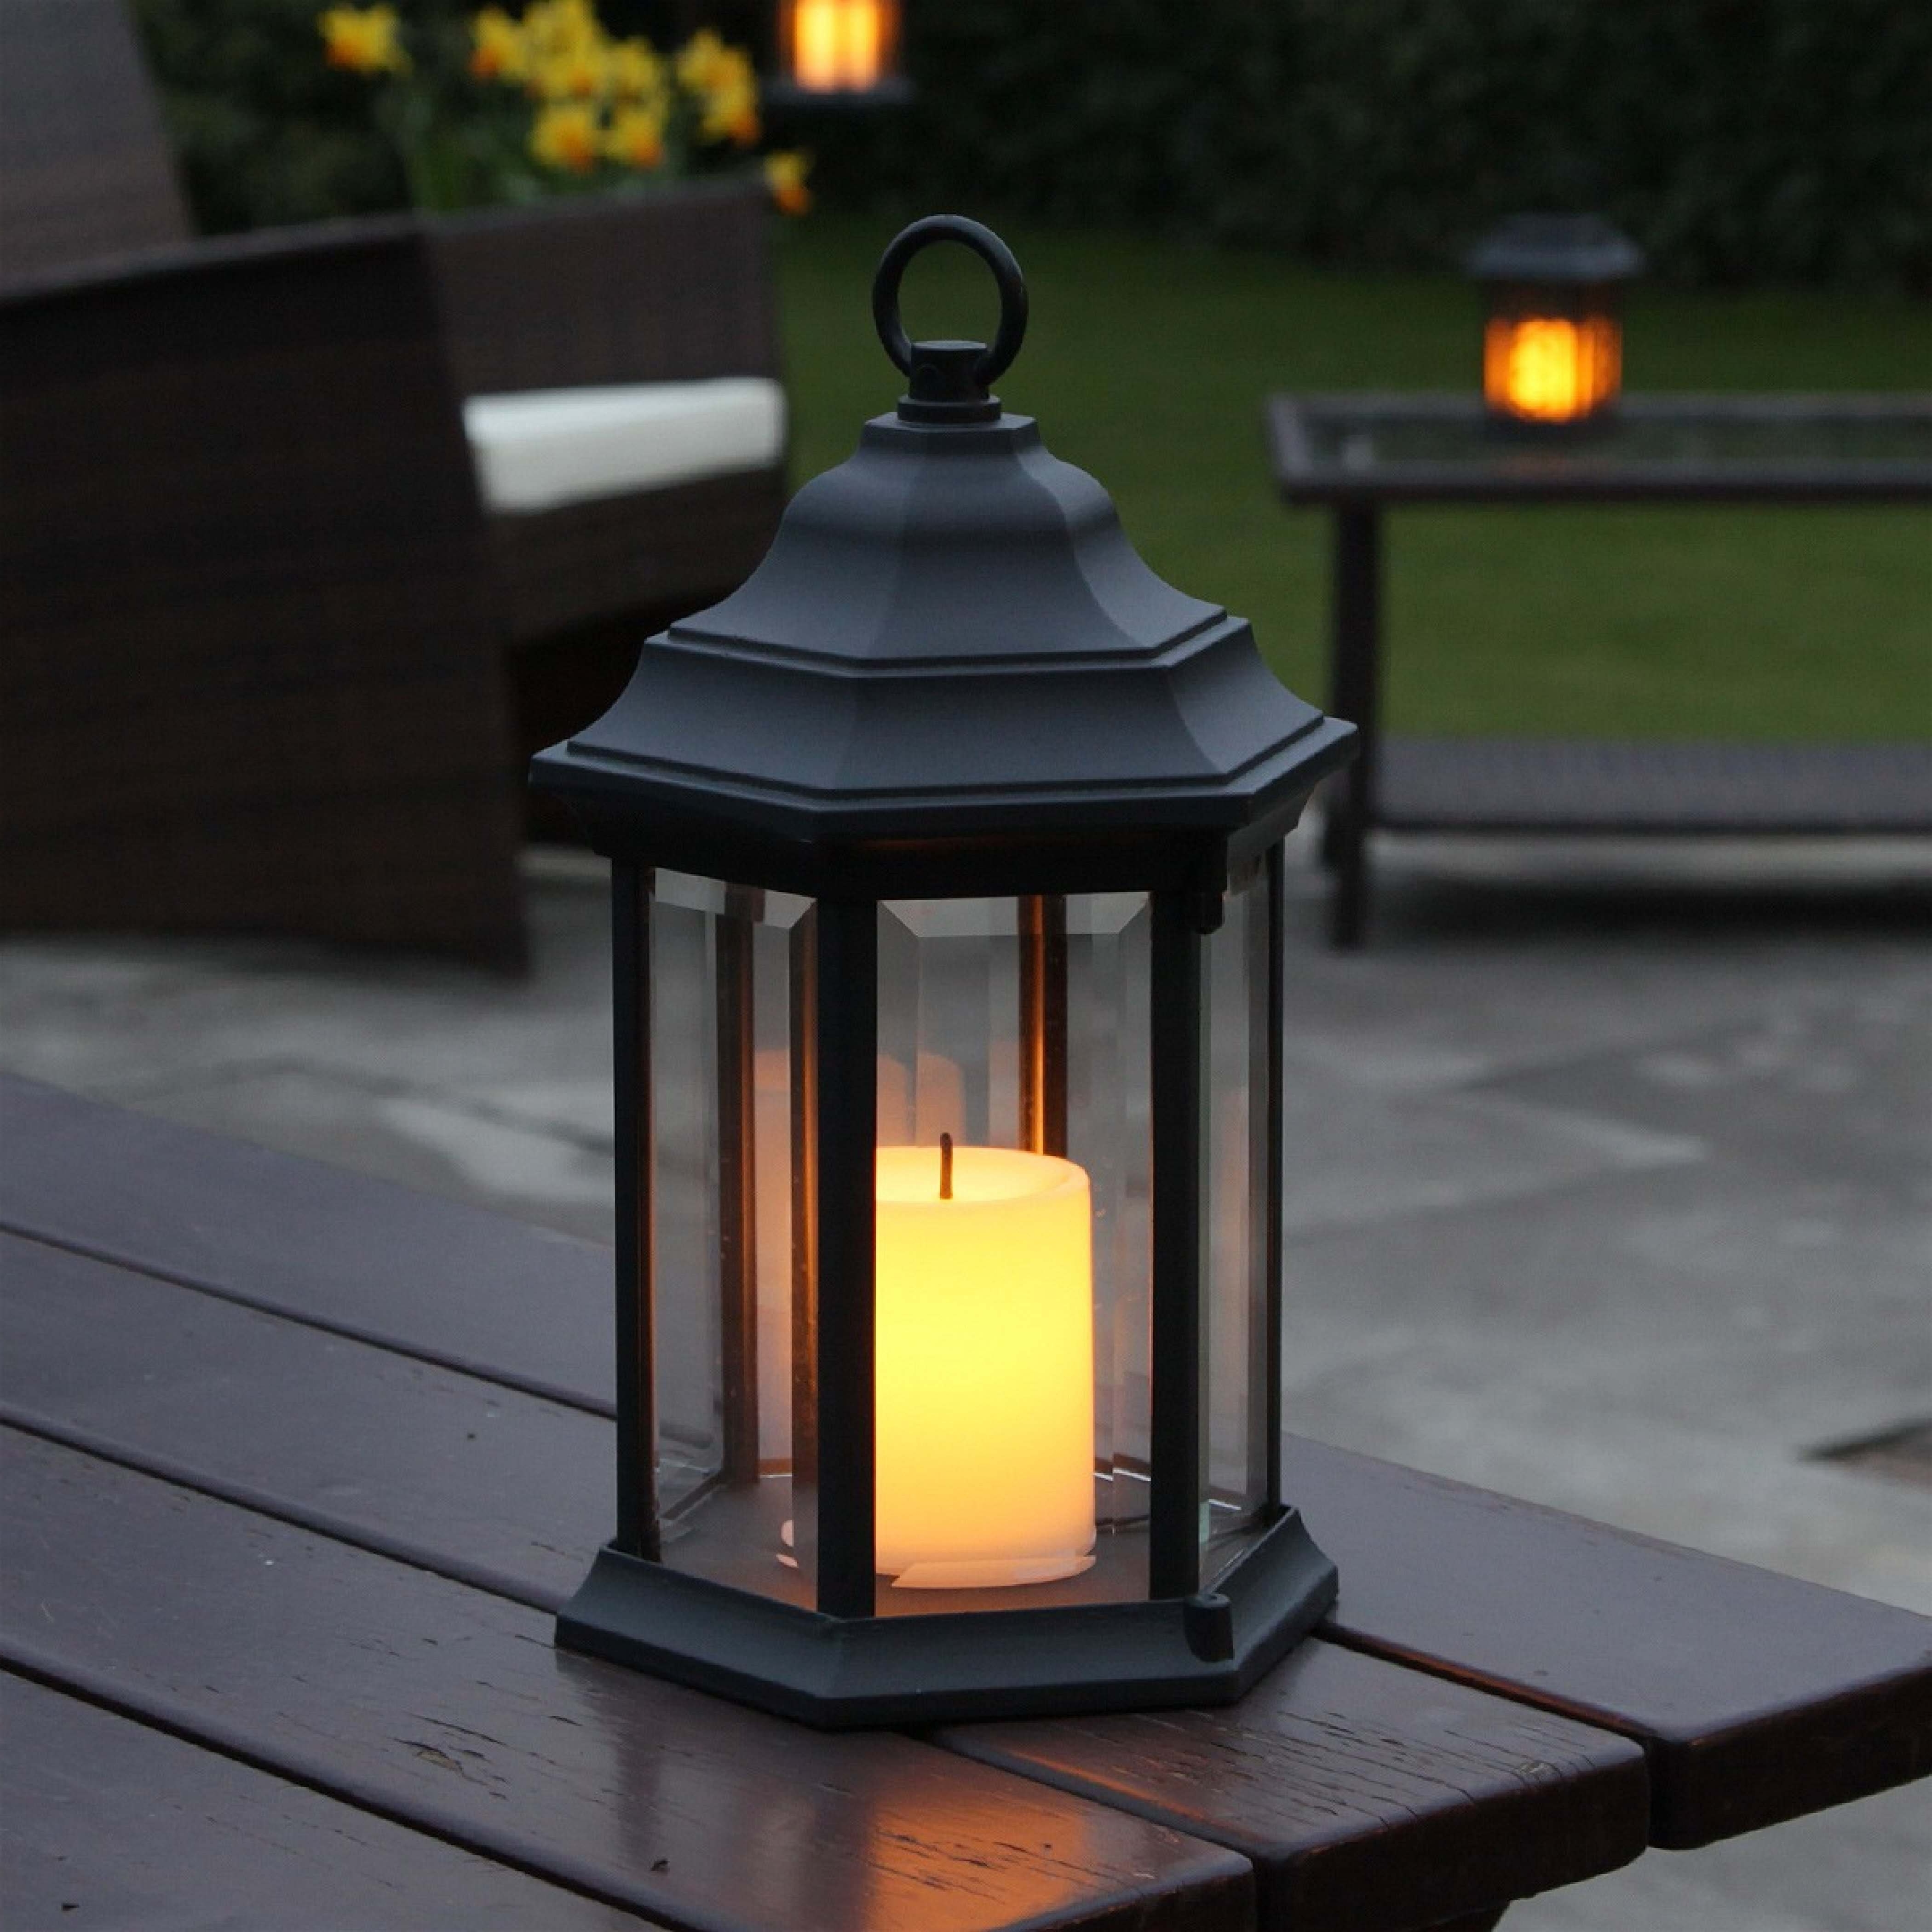 Outdoor Lanterns With Timers (View 10 of 20)